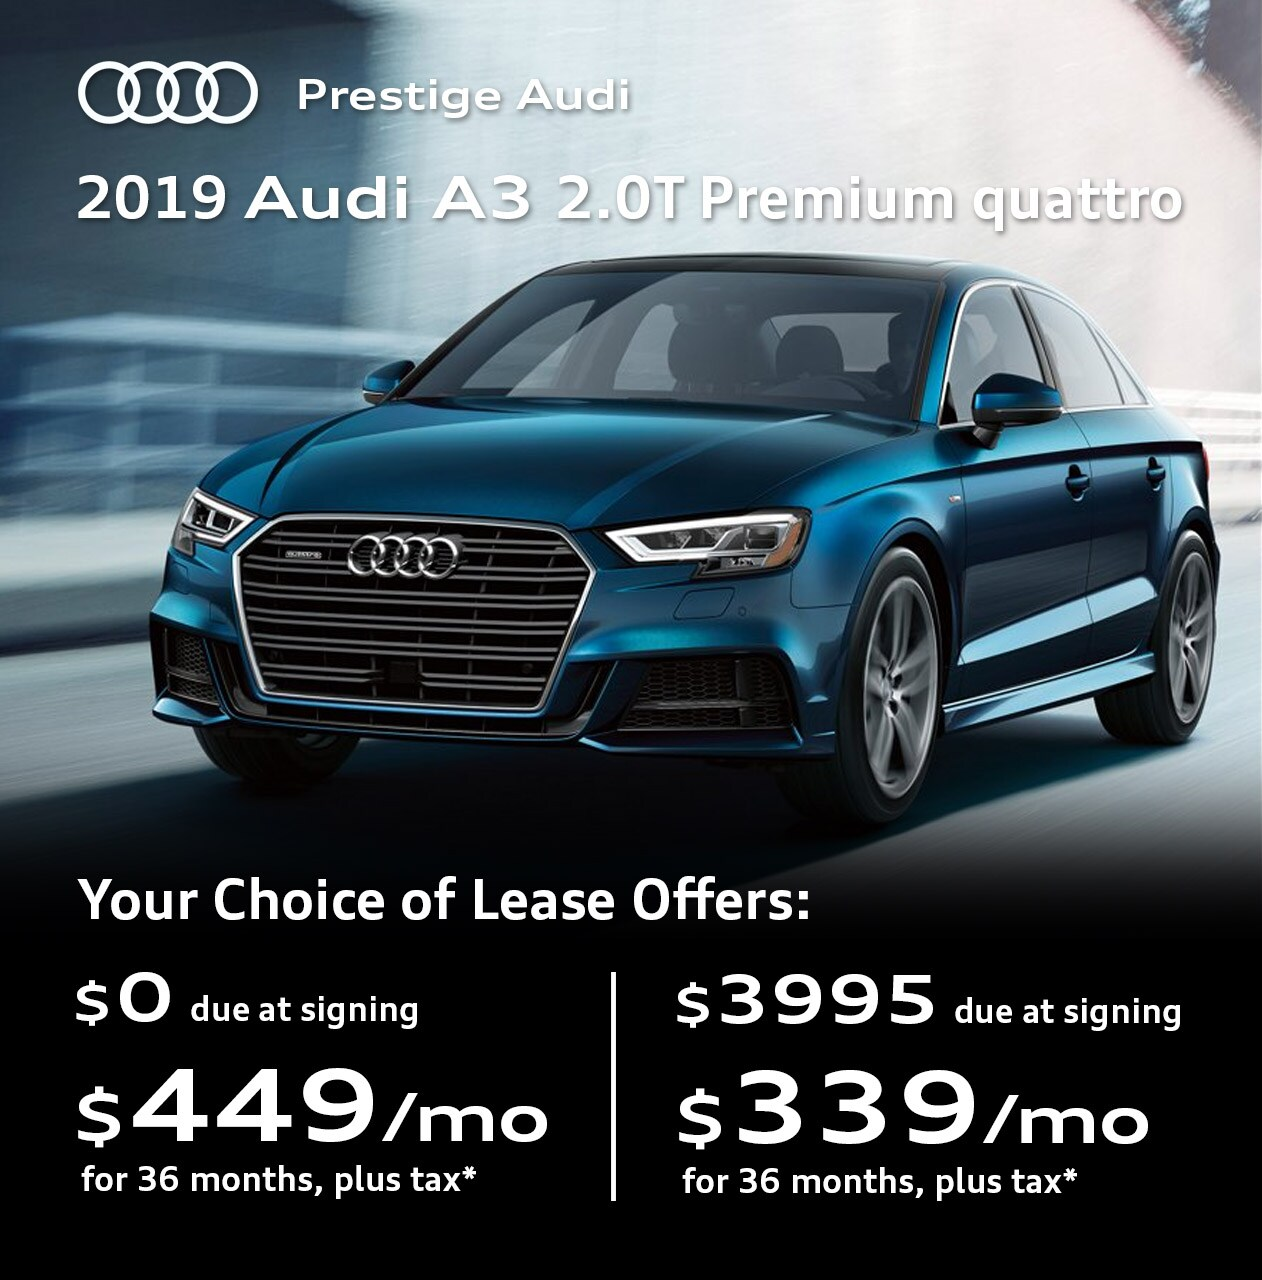 audi specials - lease deals & offers at prestige audi near denver co